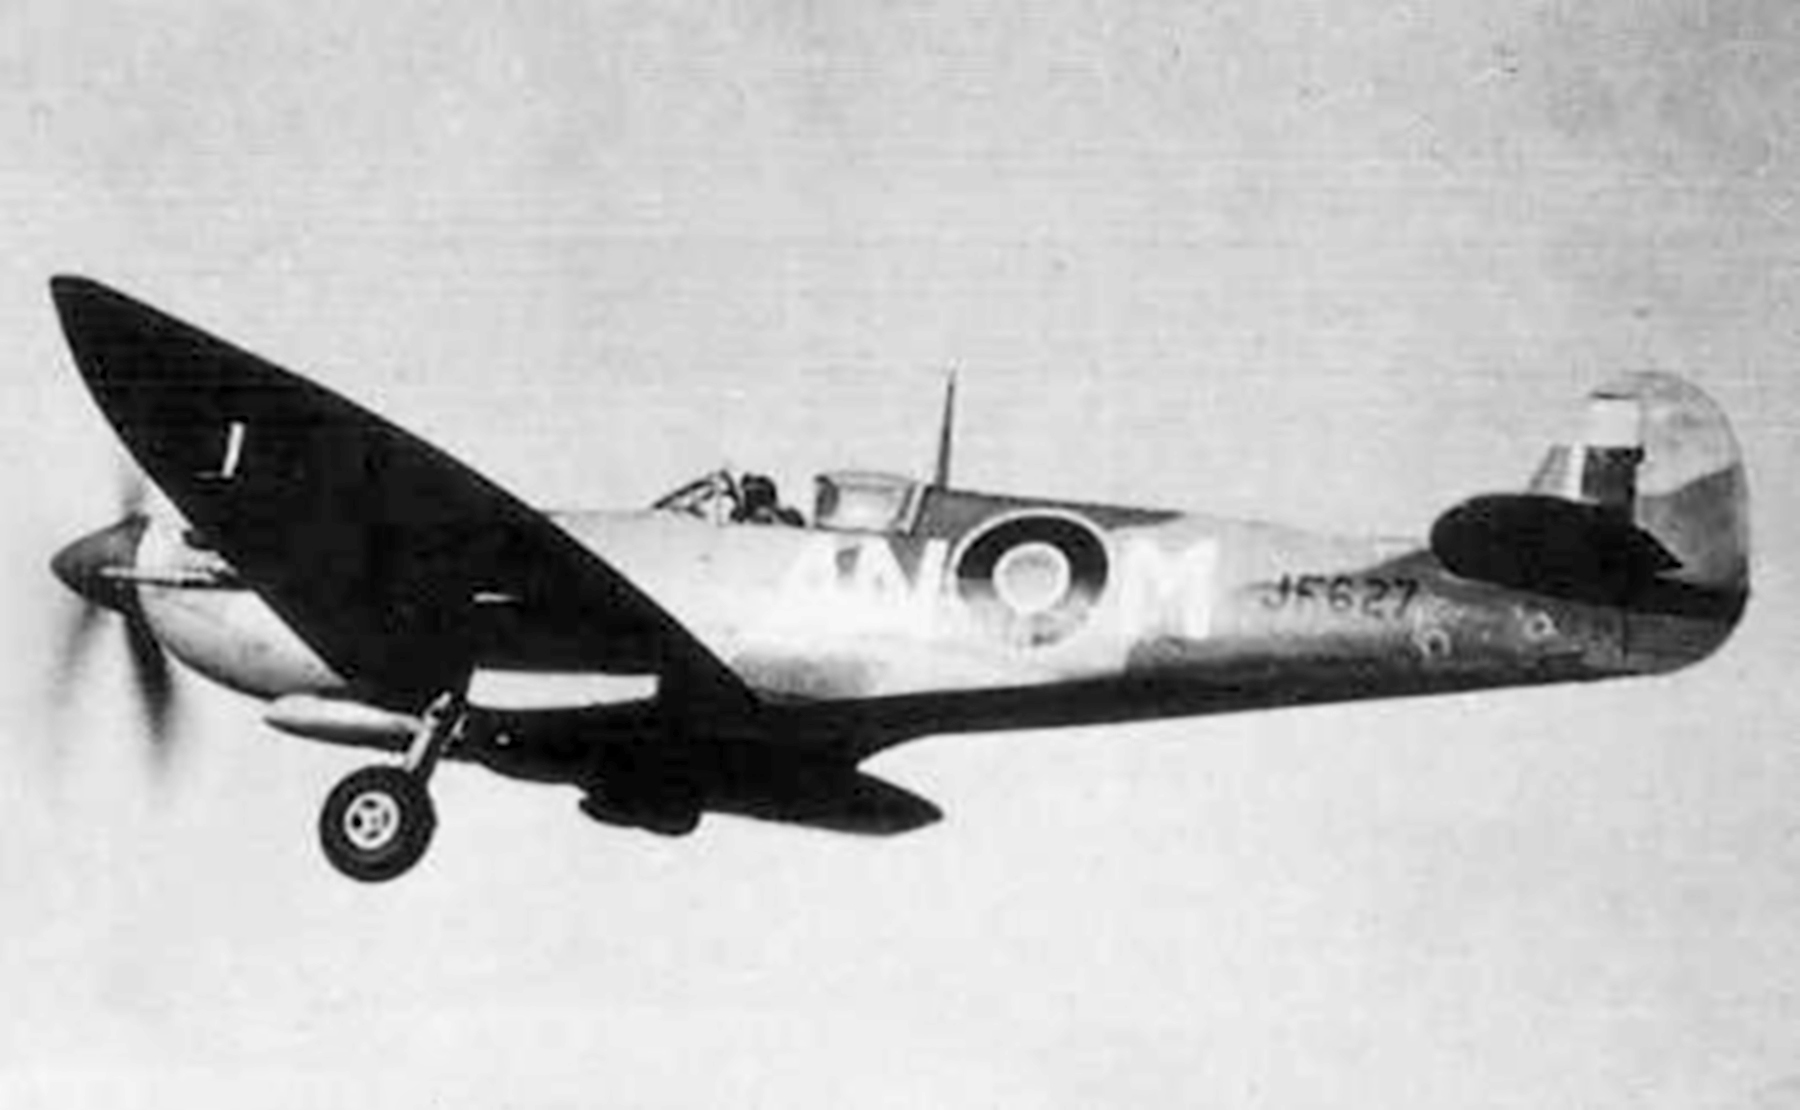 Spitfire MkVII c wing RCAF 417Sqn ANM JF627 Italy 1944 01